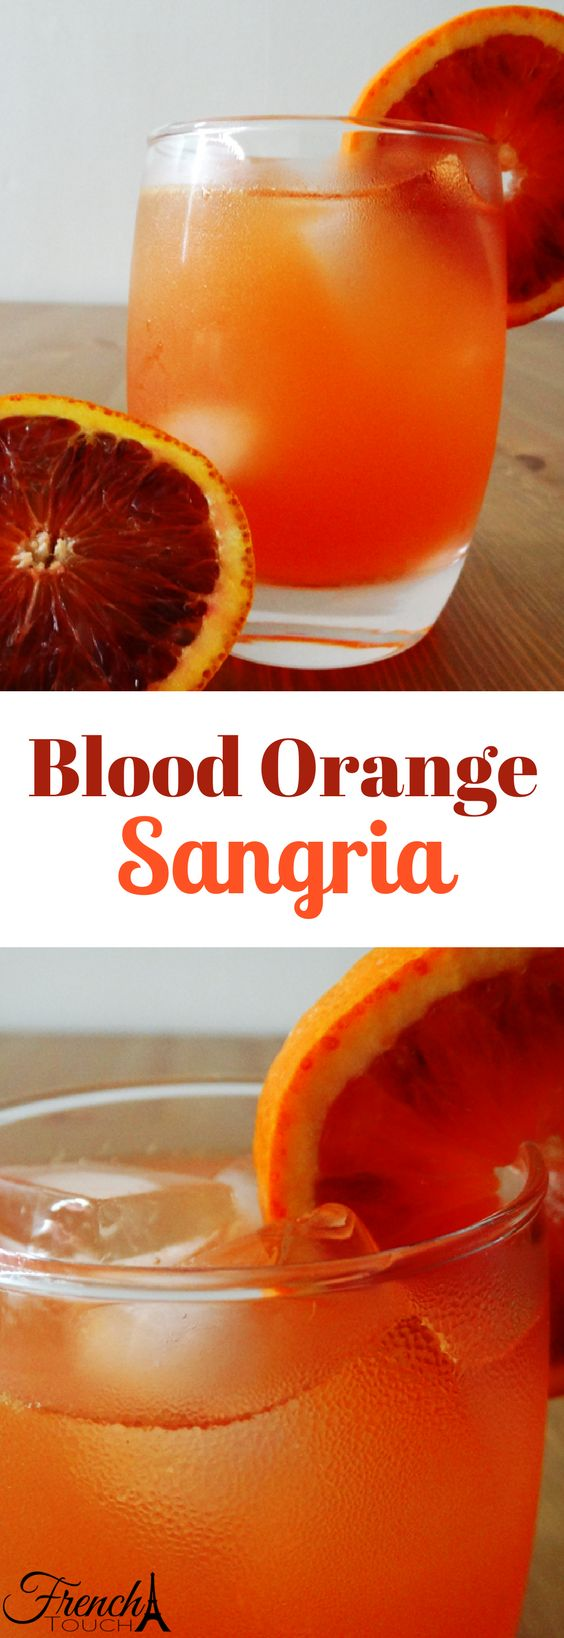 A refreshing summer drink! This sangria is a made with blood orange san pellegrino and white wine! The perfect drink for a party or just chill at home!